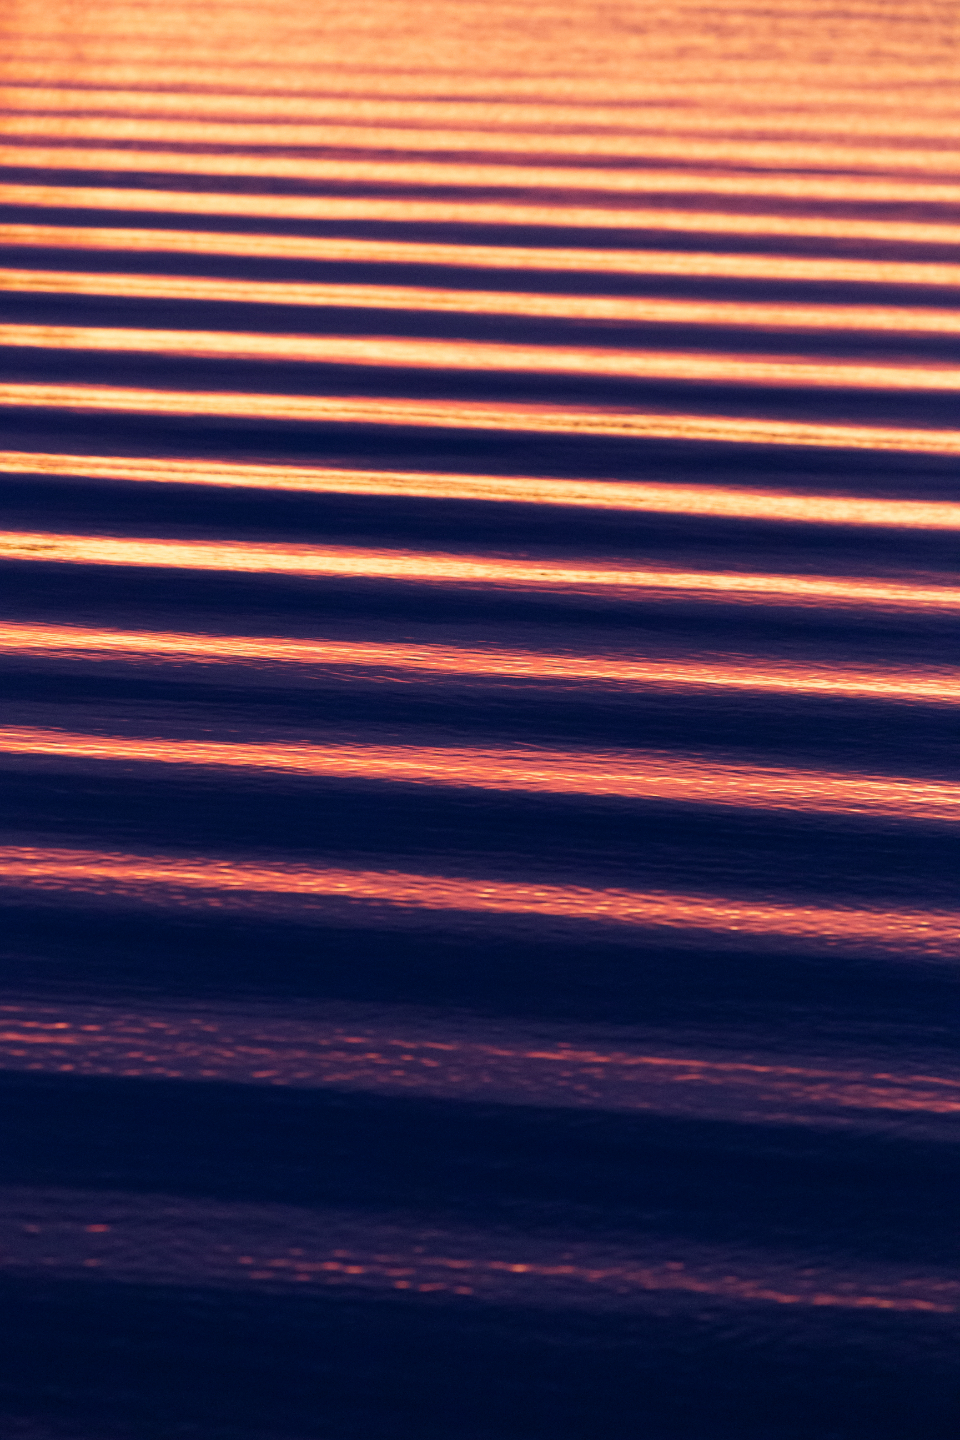 rippled water lake waves sunlight reflections current drift nature ocean river sea wet movement surface texture sunset mobile wallpaper